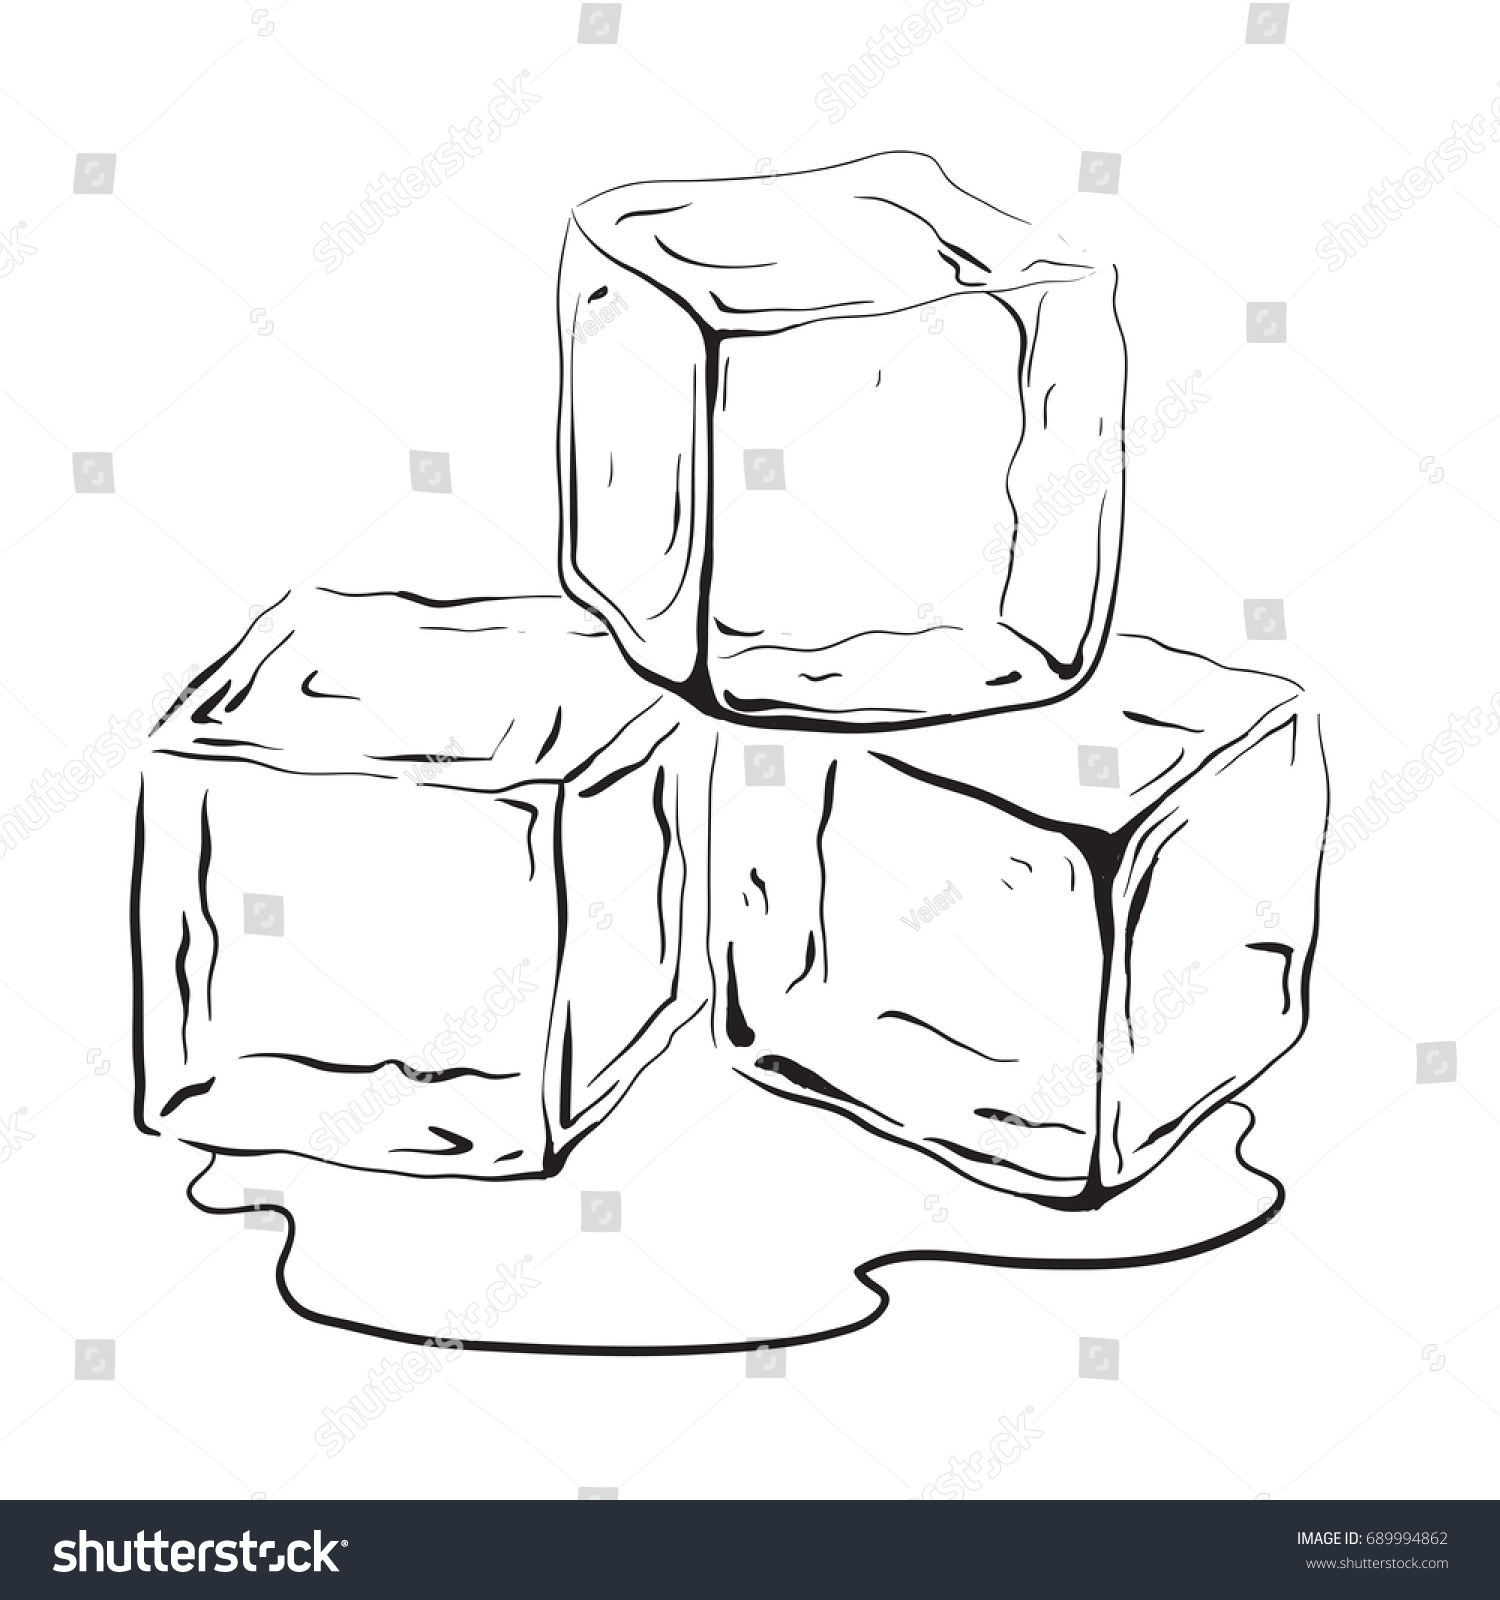 Hand drawn ice cubes. Black and white vector illustration for your  creativity - Ice PNG Black And White